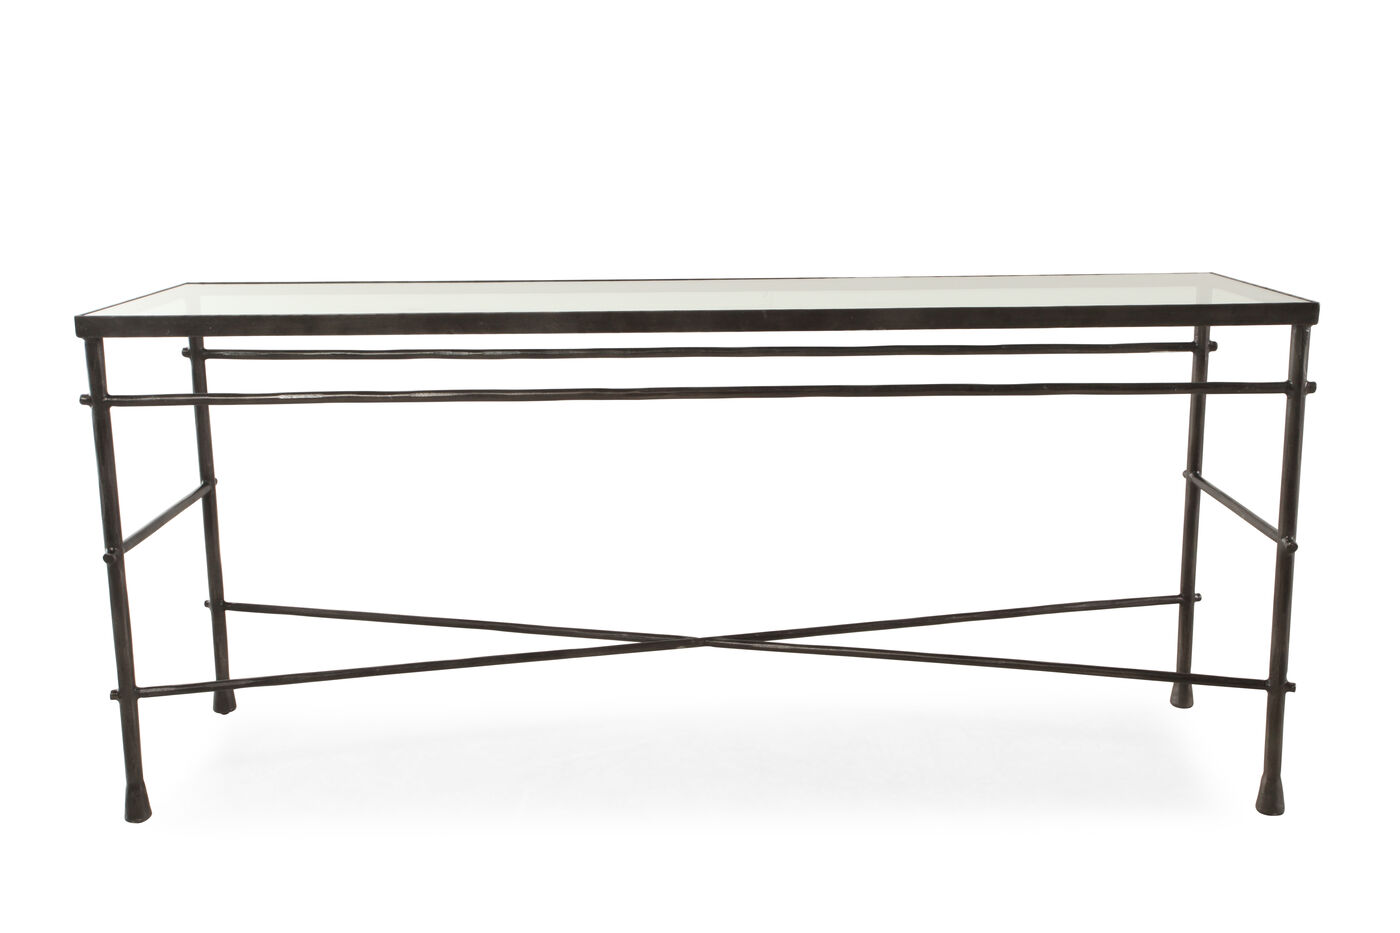 Cross braced traditional sofa table in gunmetal gray mathis cross braced traditional sofa table in gunmetal gray geotapseo Gallery